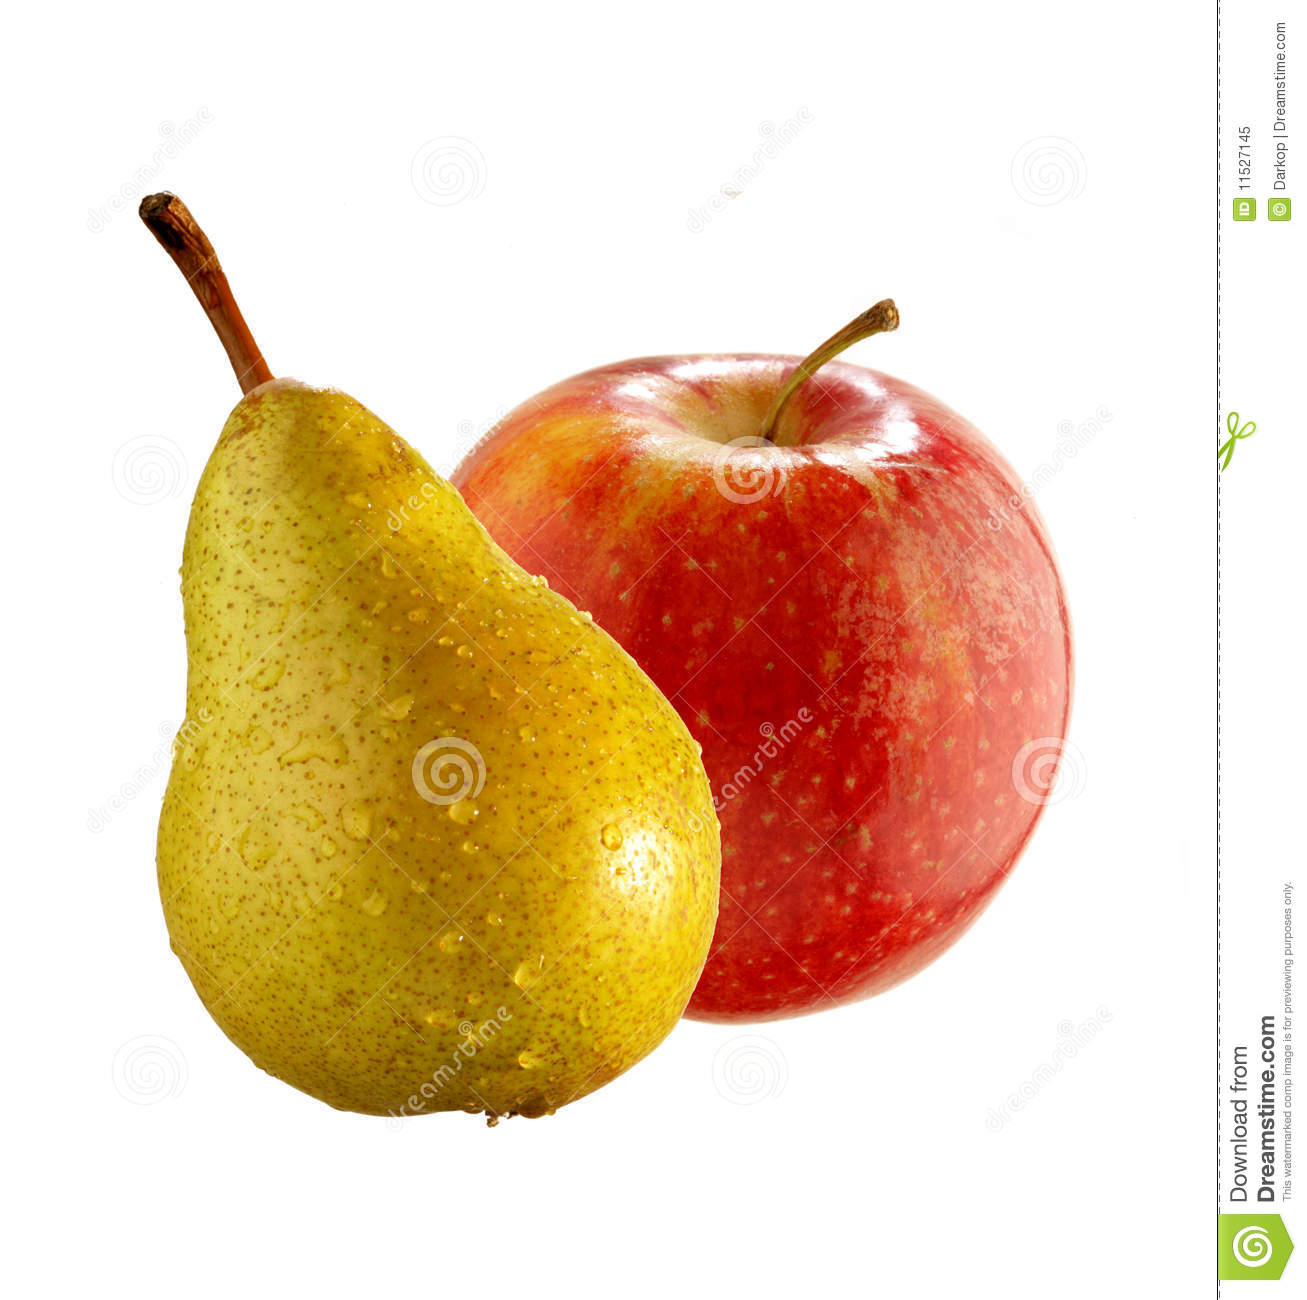 apple and pear royalty free stock photo image 11527145